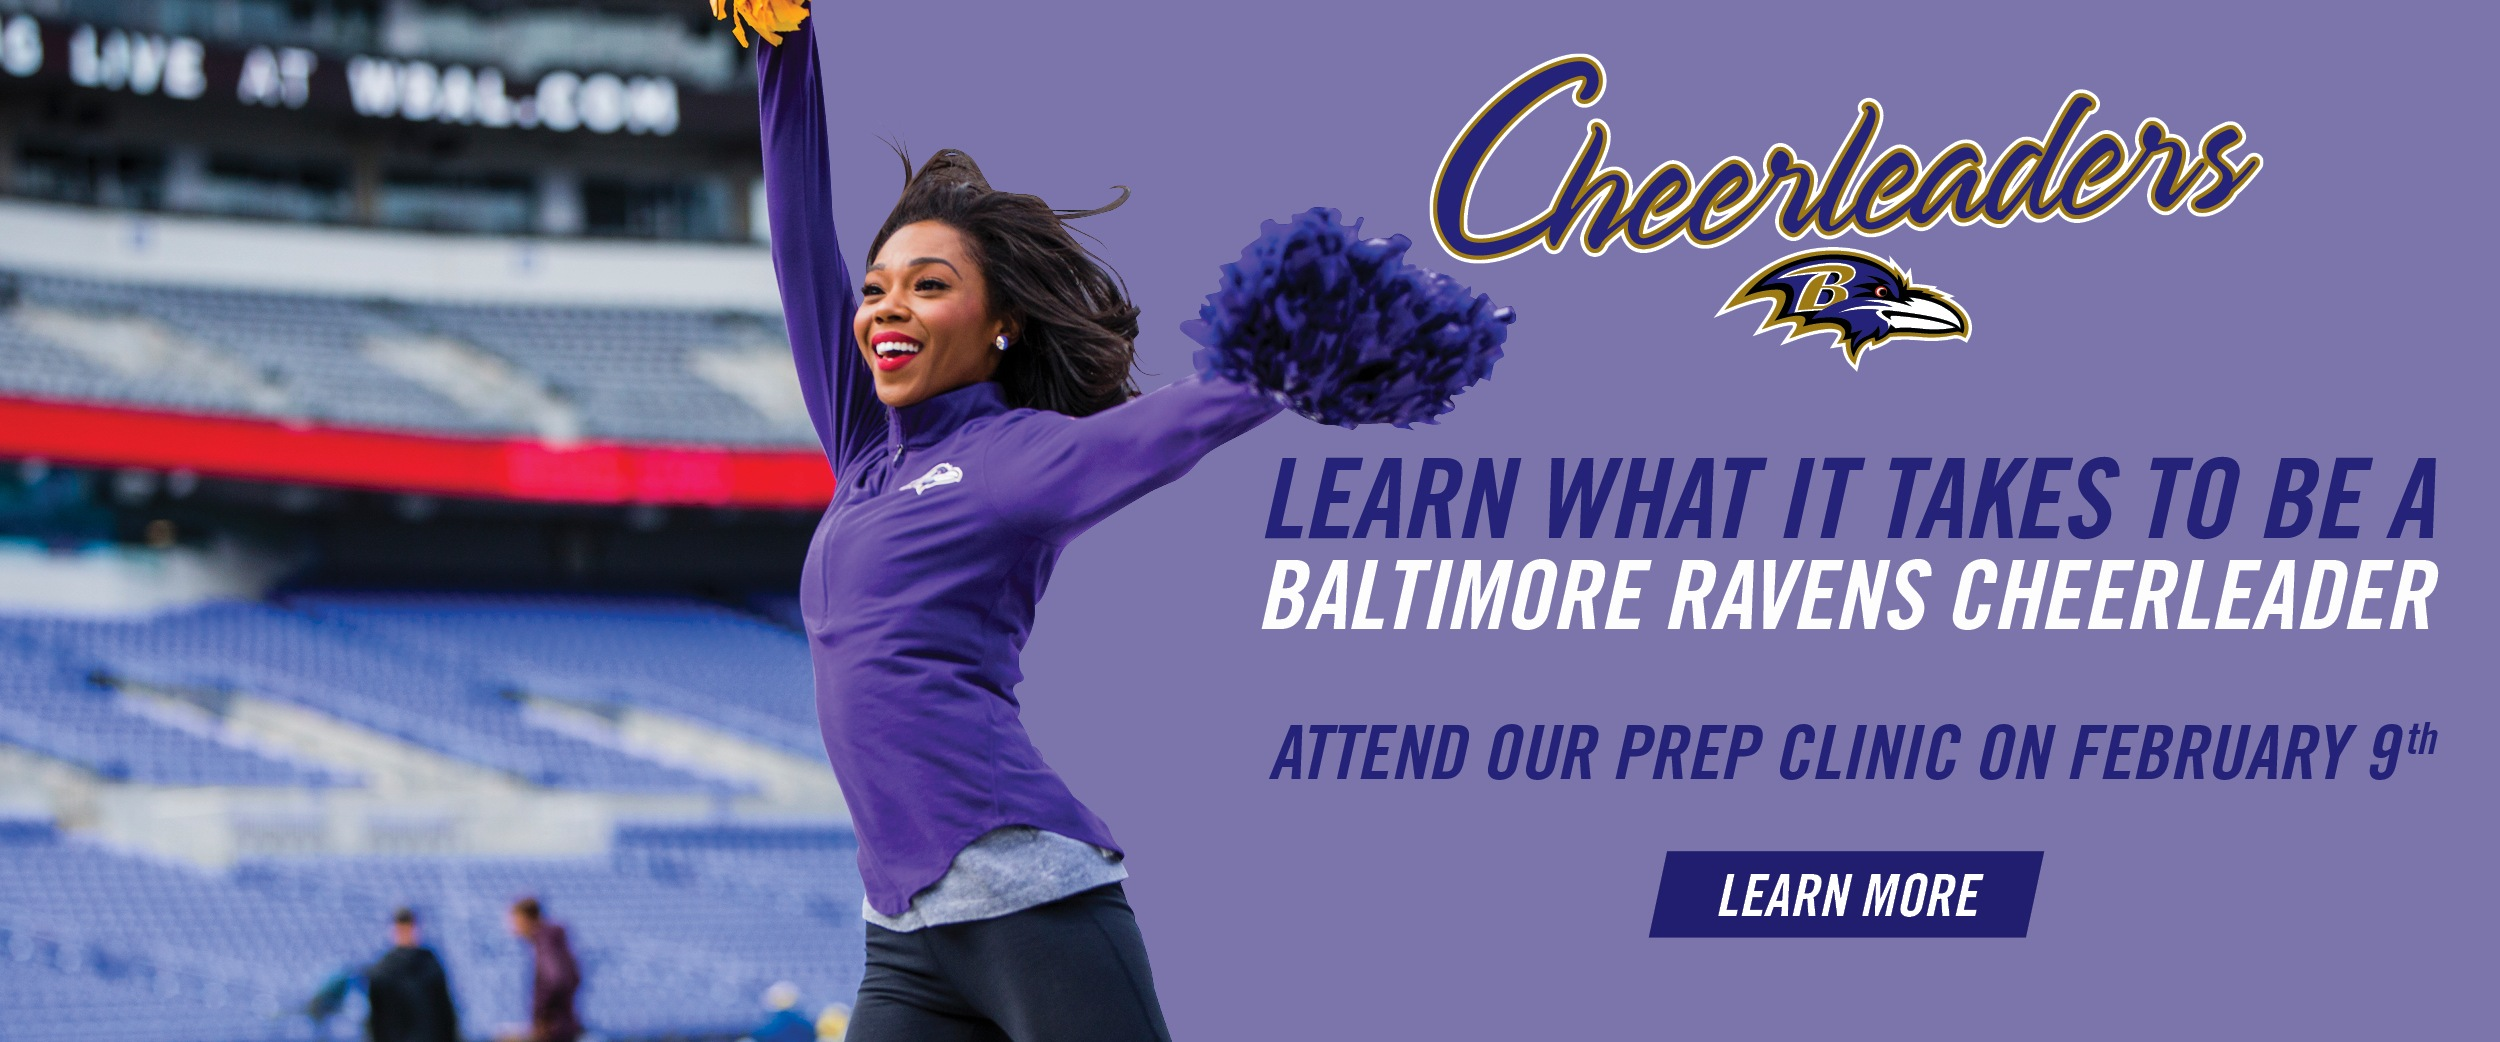 Cheerleader Prep Clinic